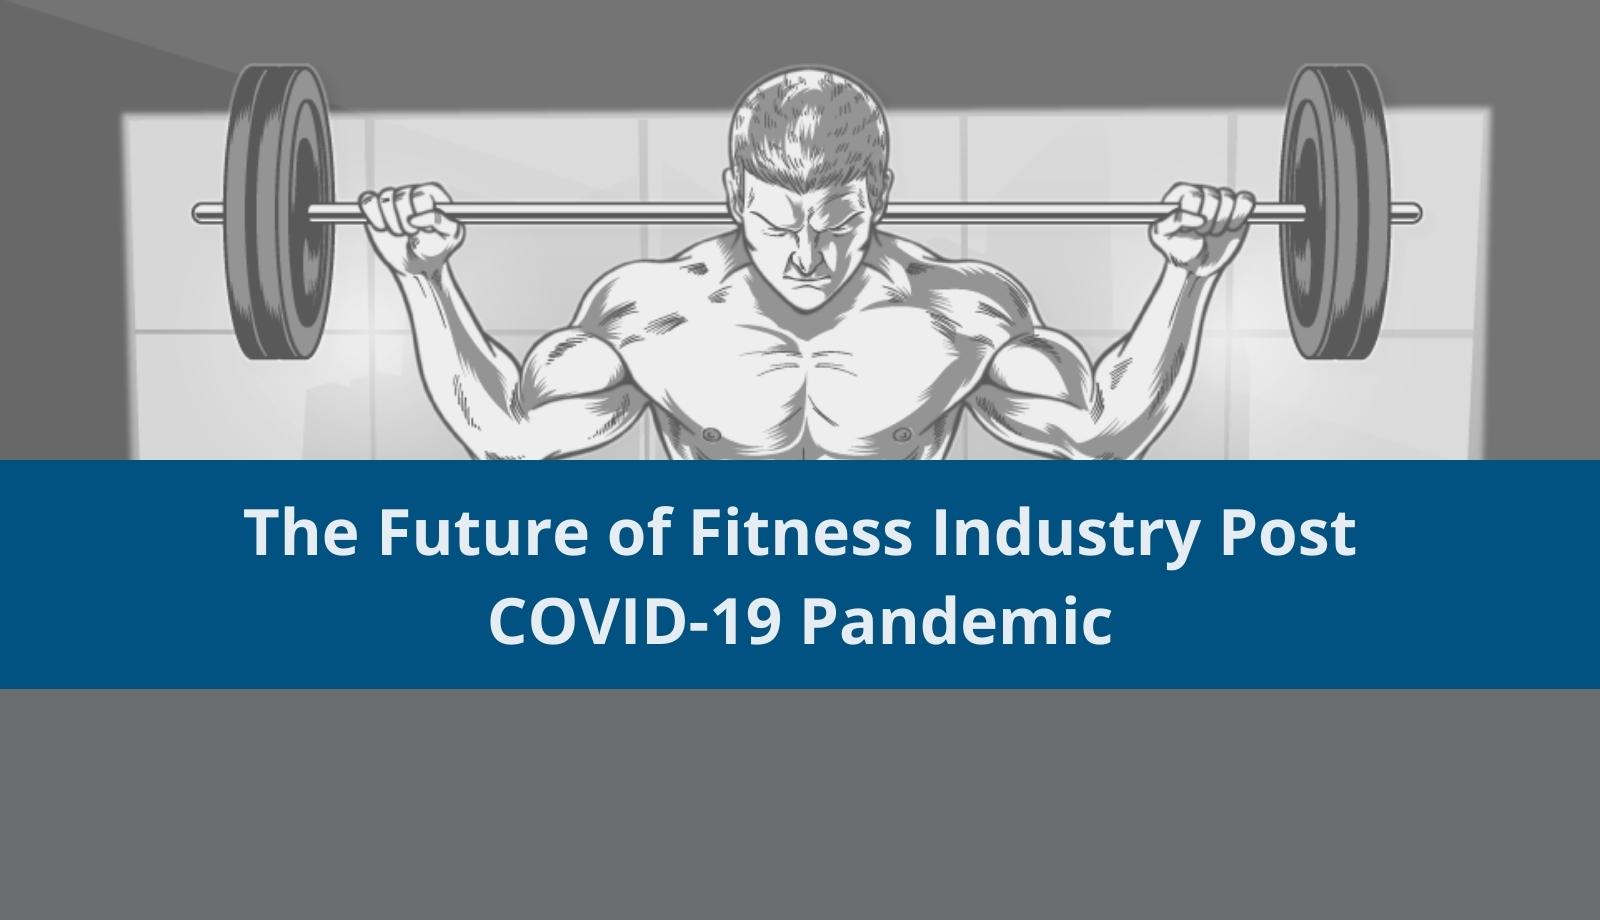 The Future of Fitness Industry Post COVID-19 Pandemic [Infographic]